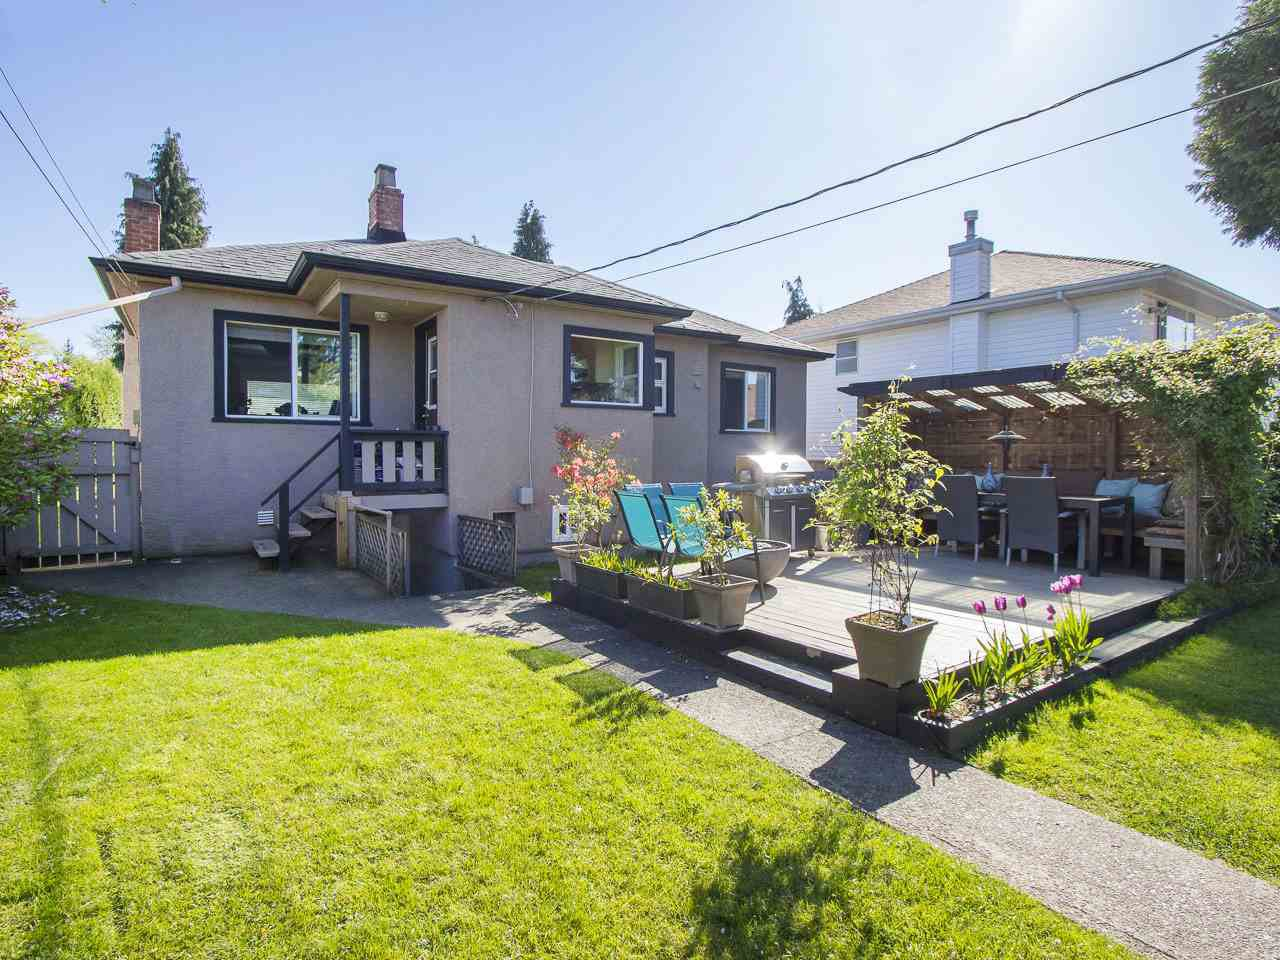 Photo 11: Photos: 731 W KING EDWARD AVENUE in Vancouver: Cambie House for sale (Vancouver West)  : MLS®# R2204992